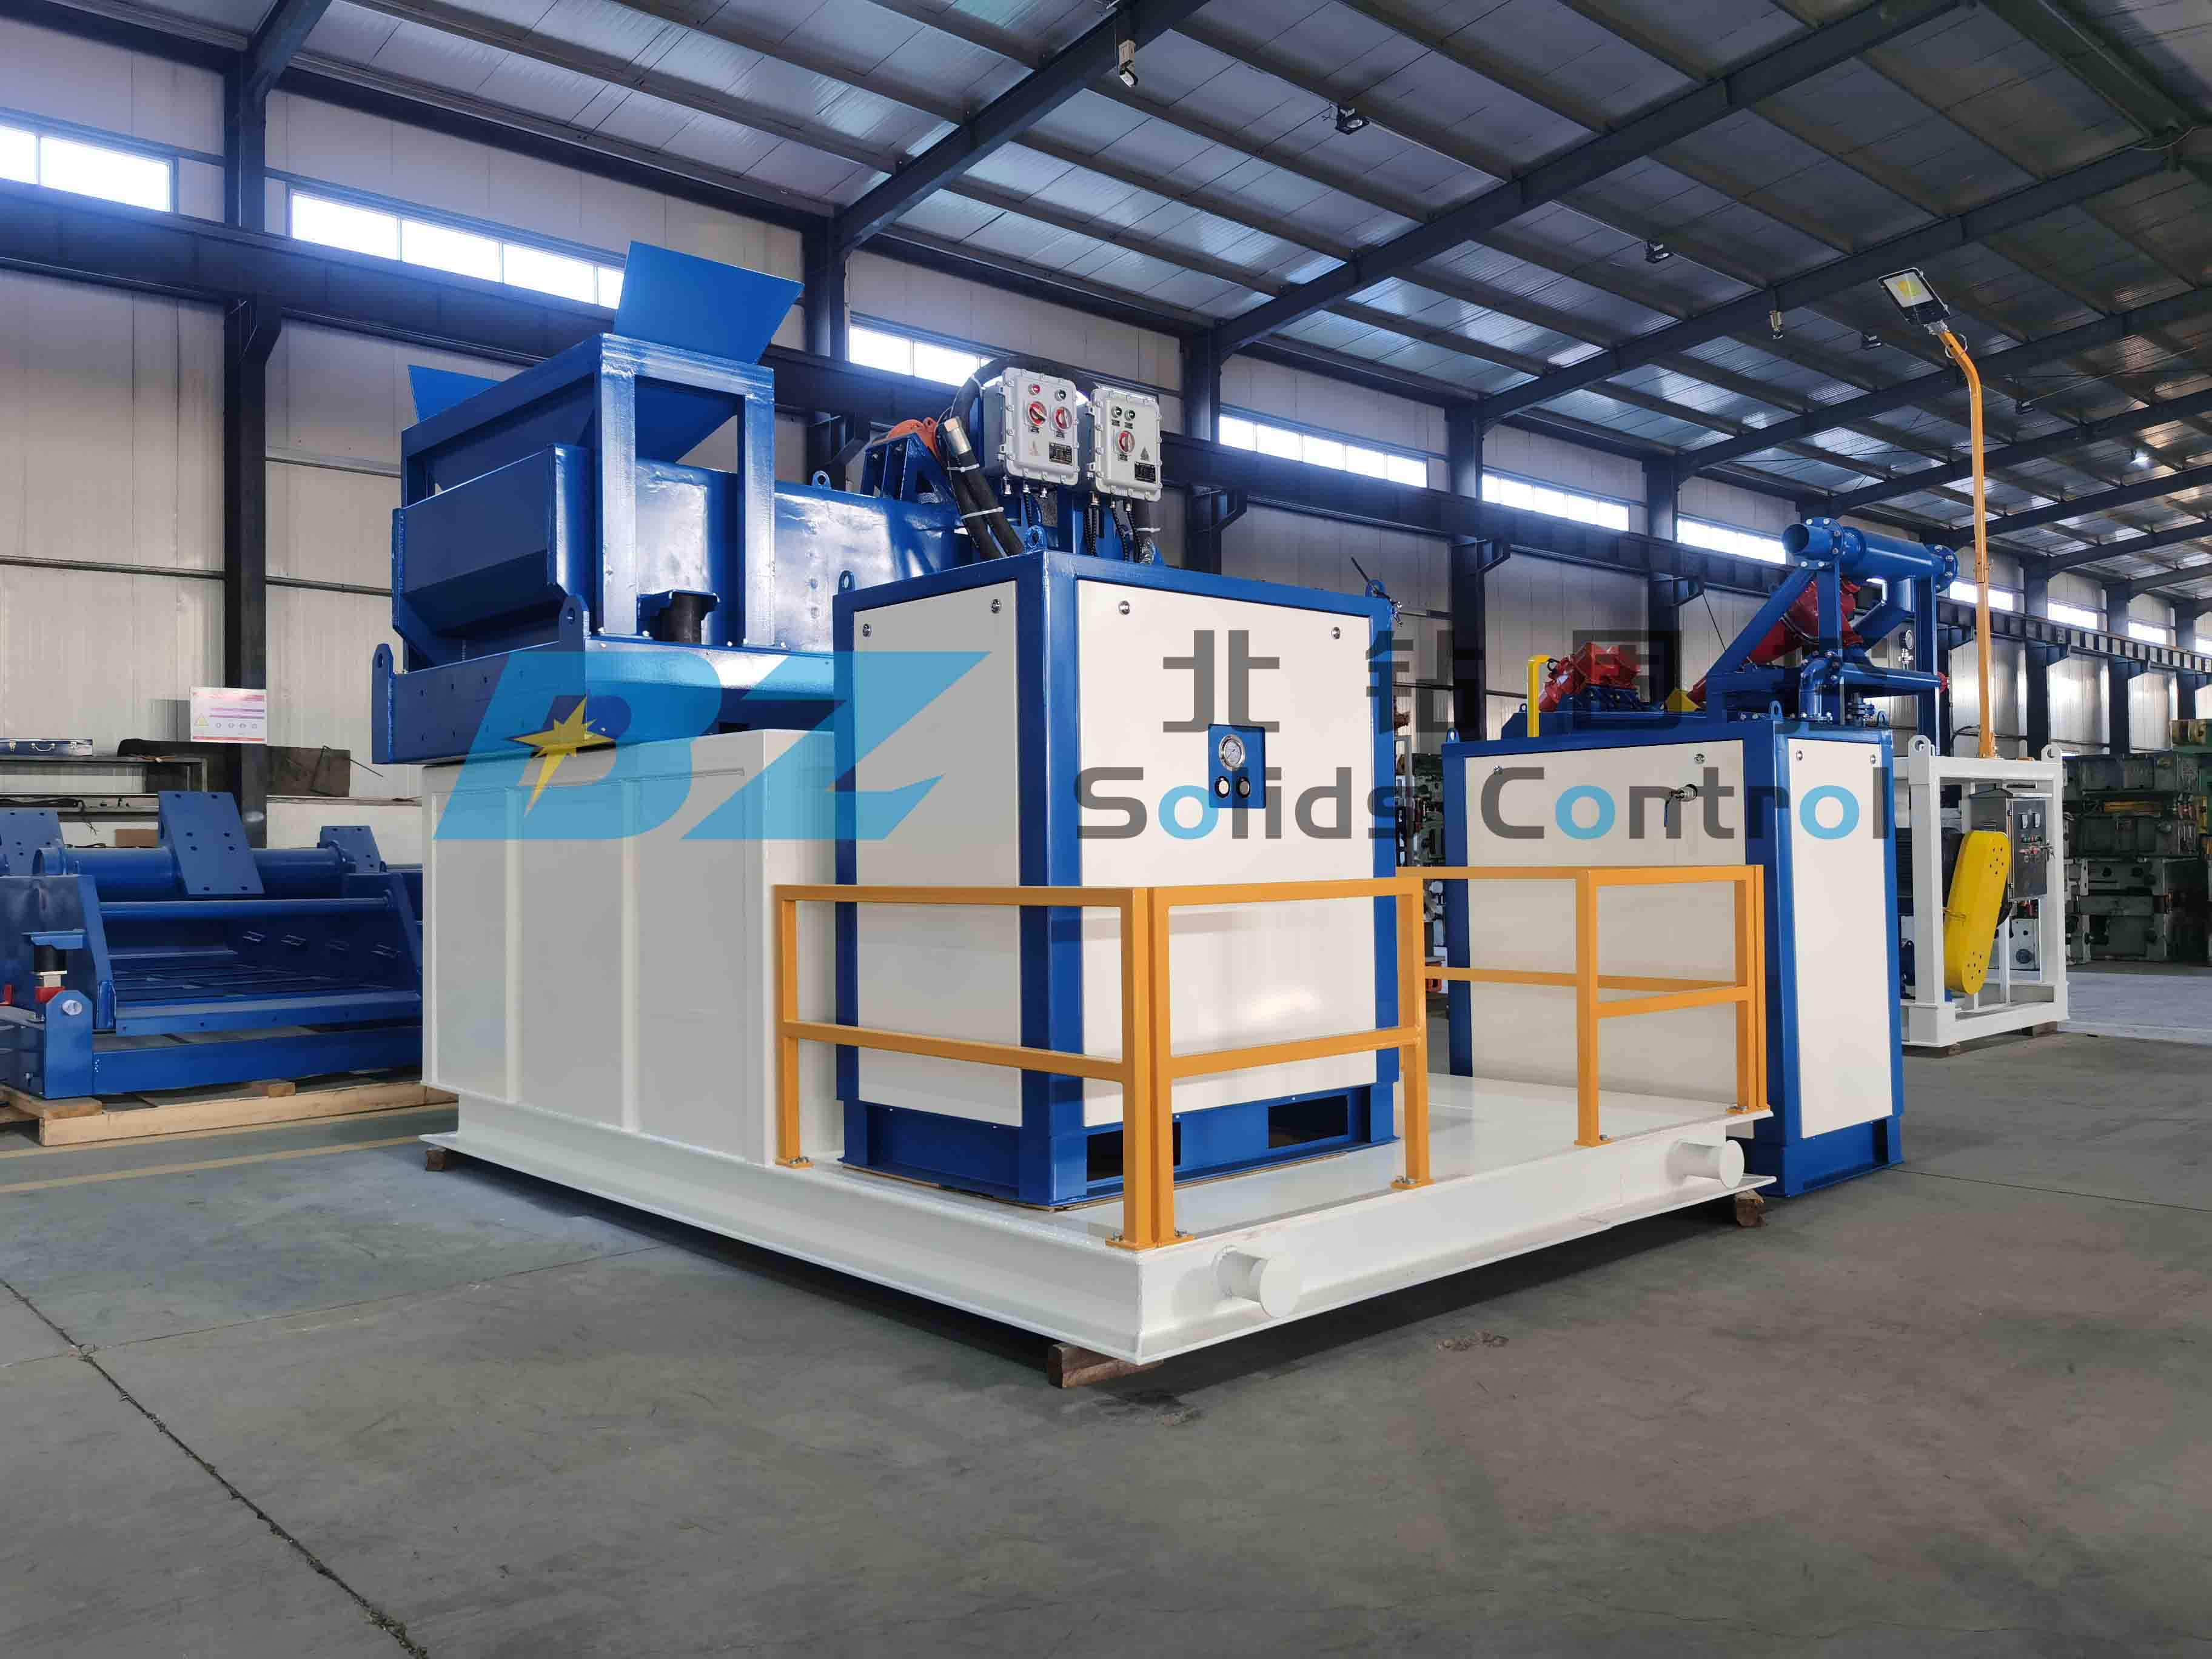 BZ vacuum suction shale shaker device  sent to waste disposal site